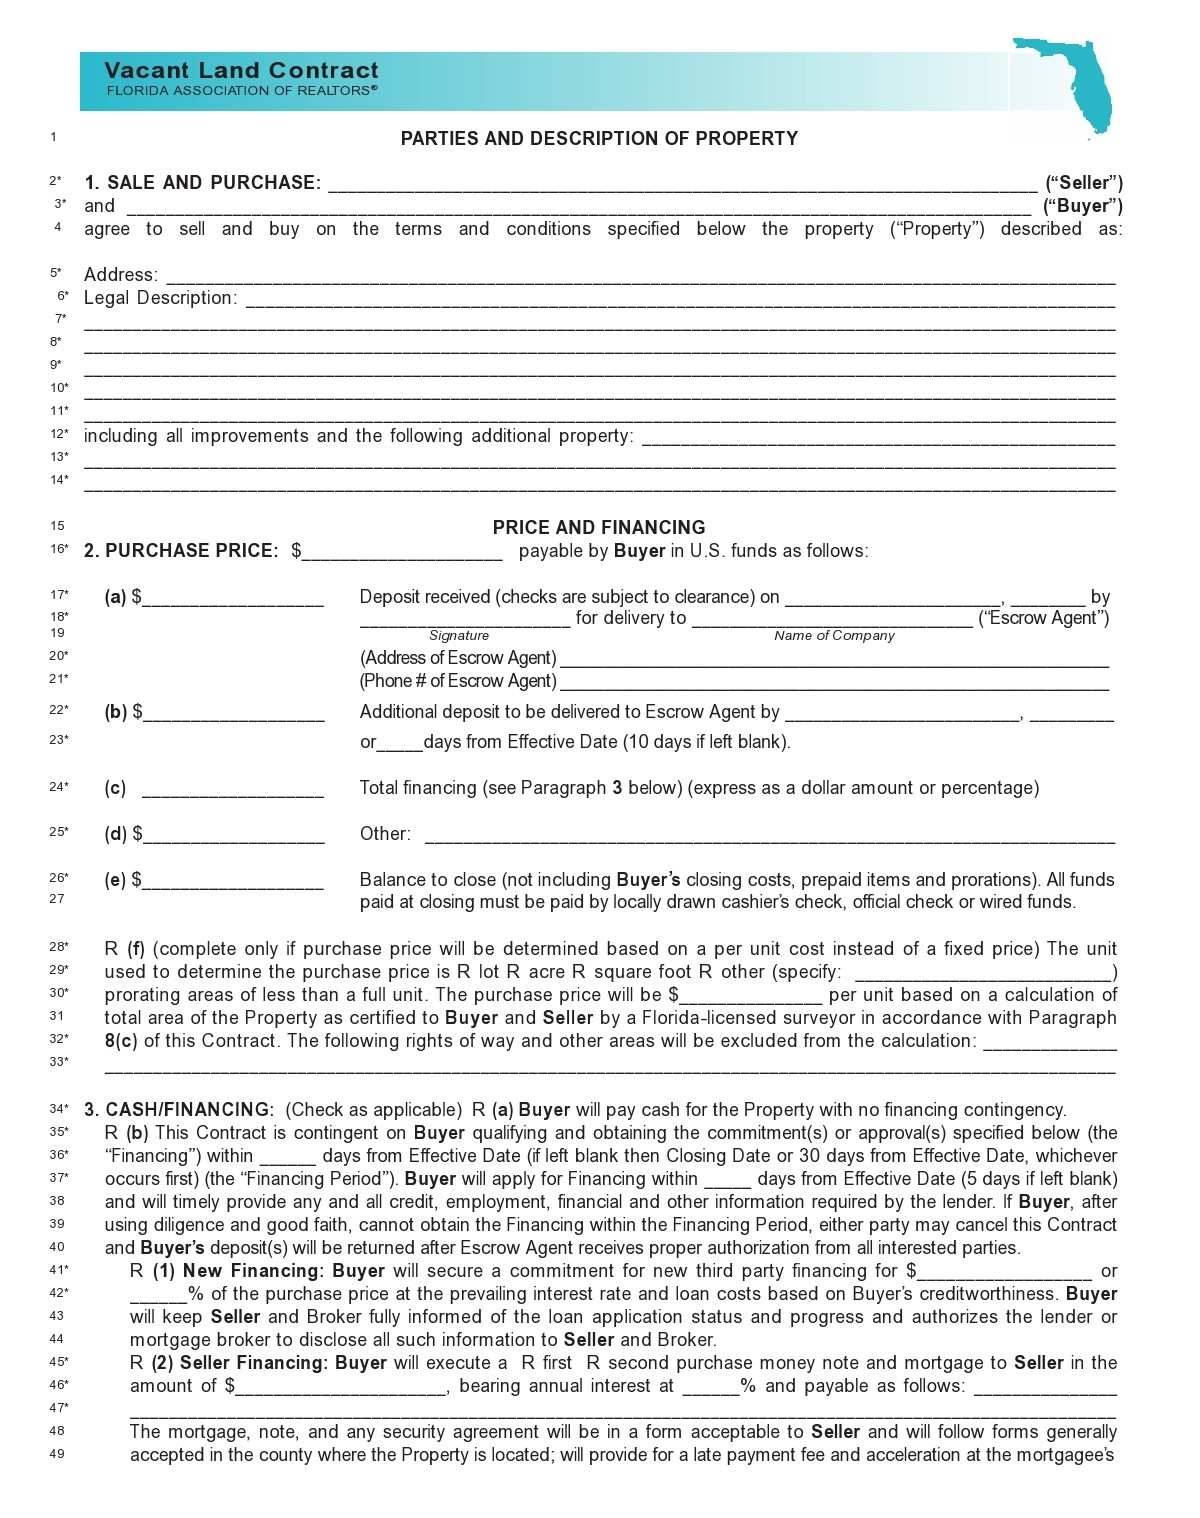 Free land contract form 05